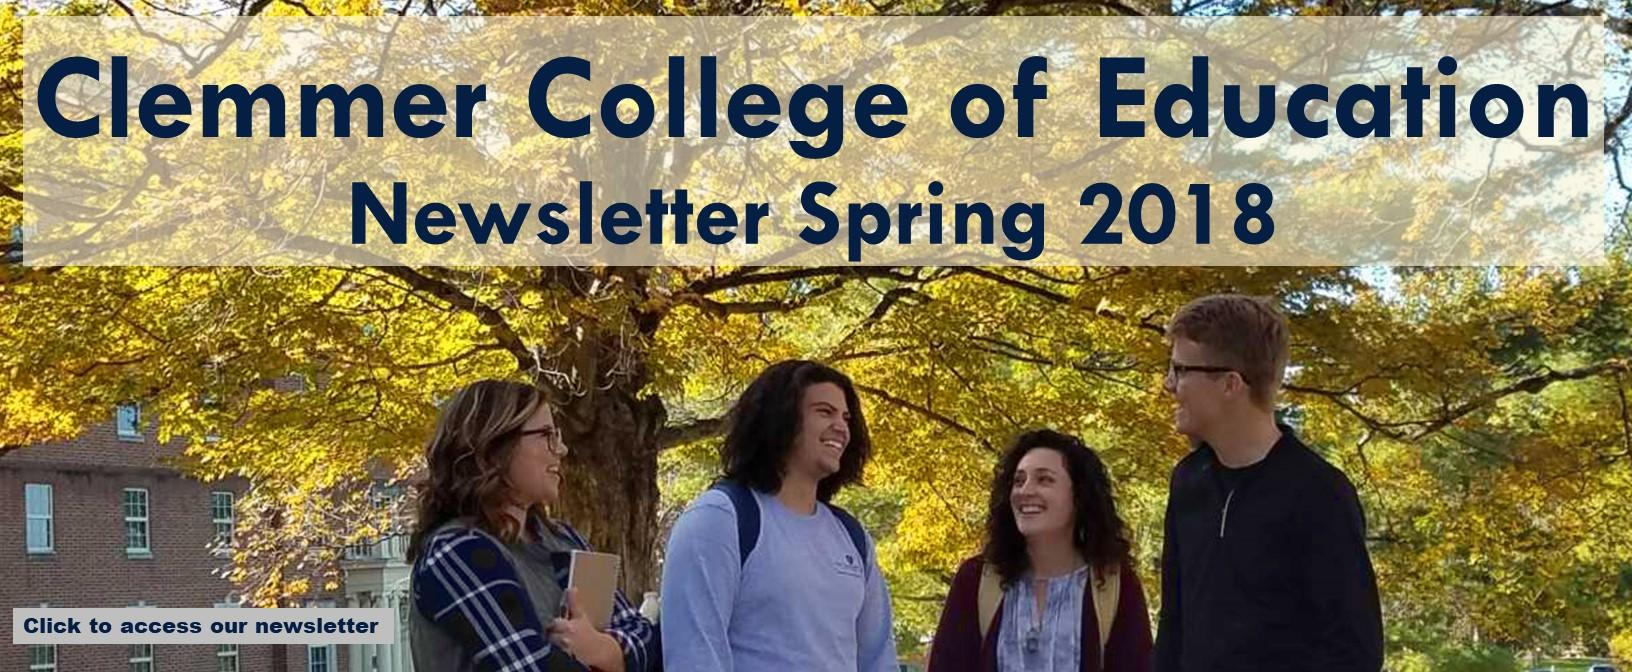 Clemmer College of Education Spring 2018 Newsletter